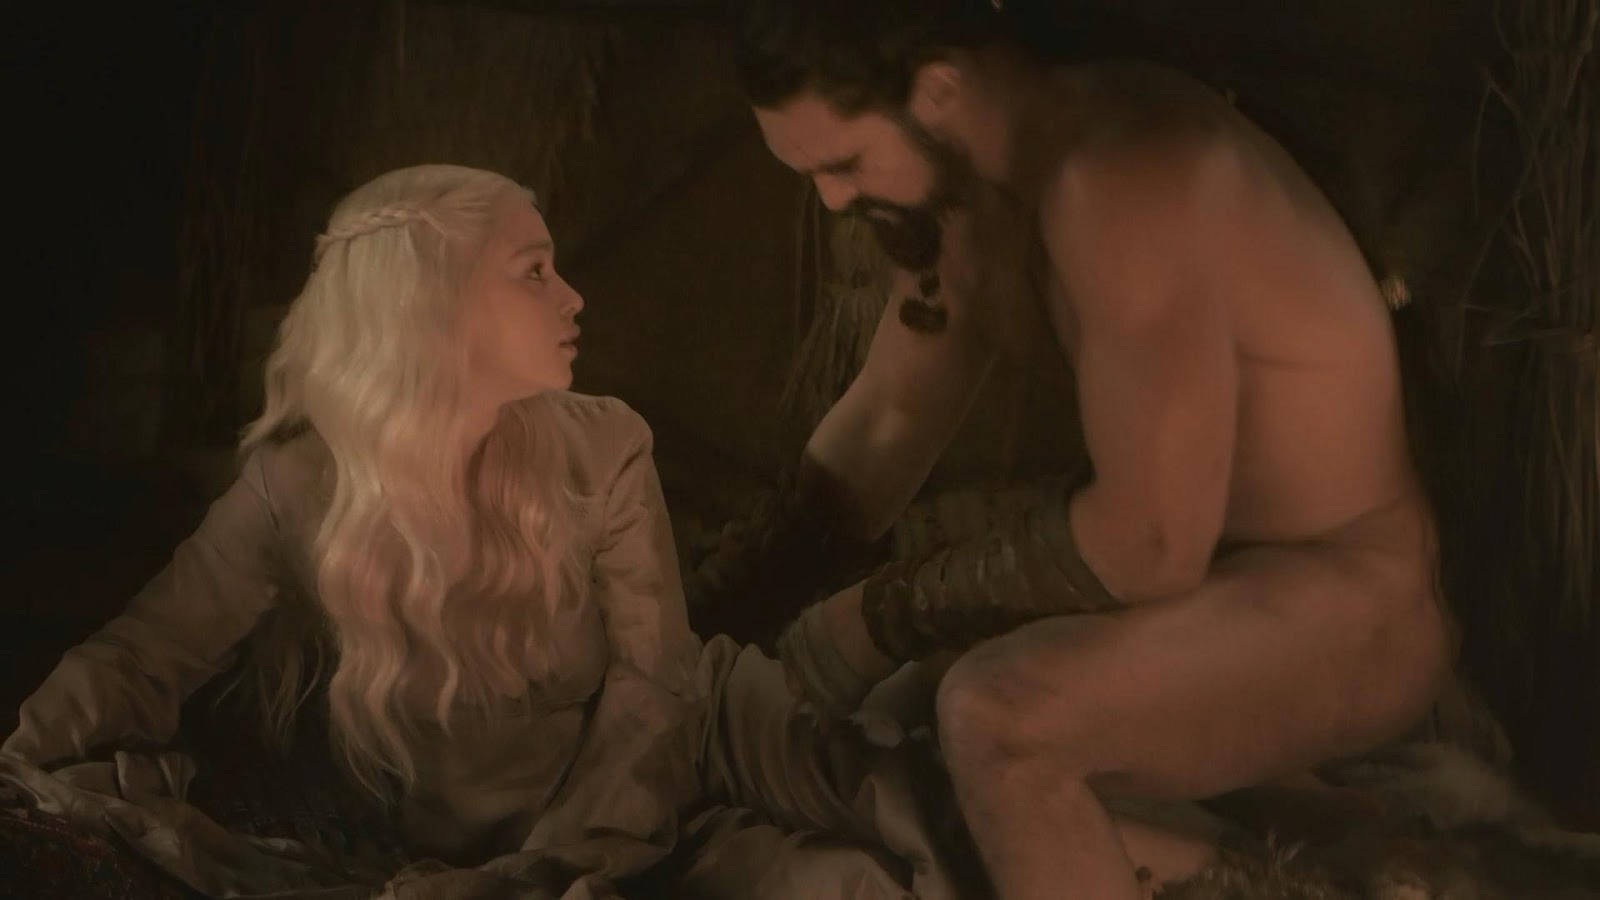 Consider, Jason momoa game of thrones nude almost